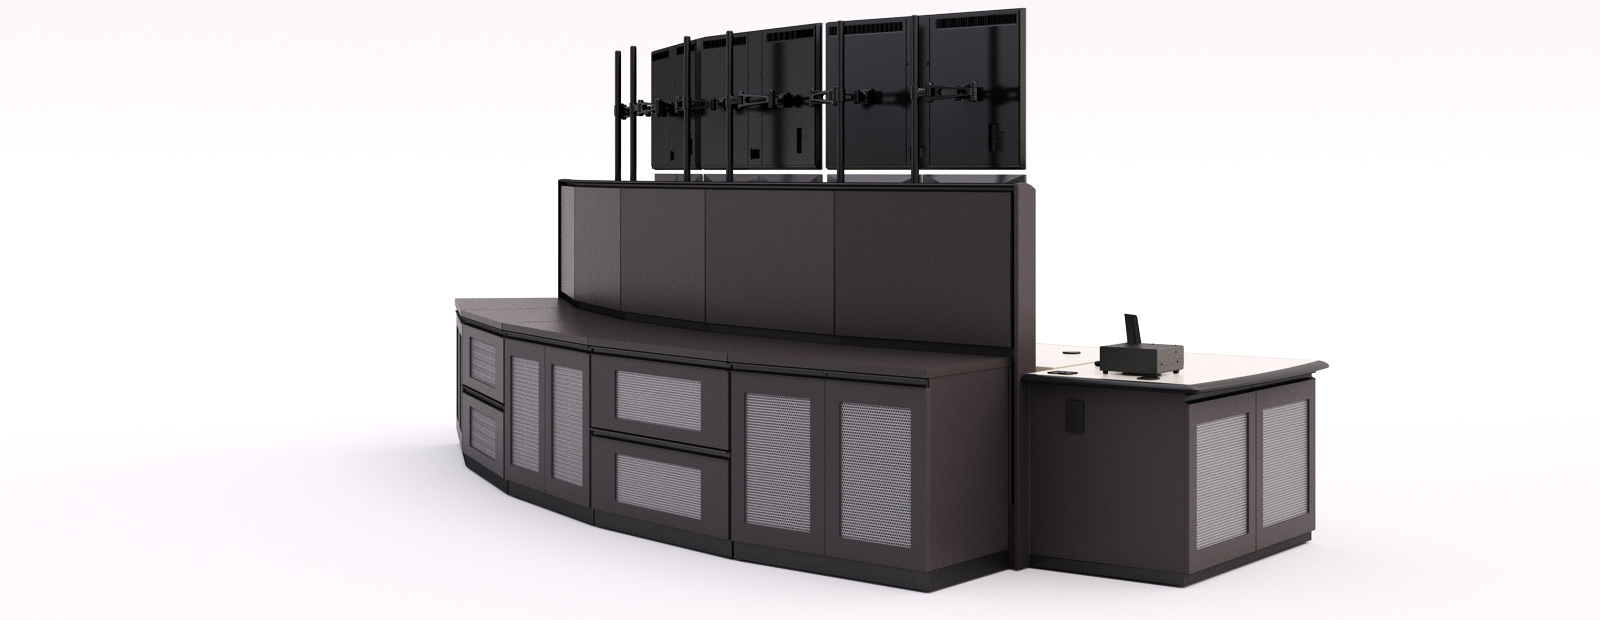 CONTROL ROOM SIT STAND DESK